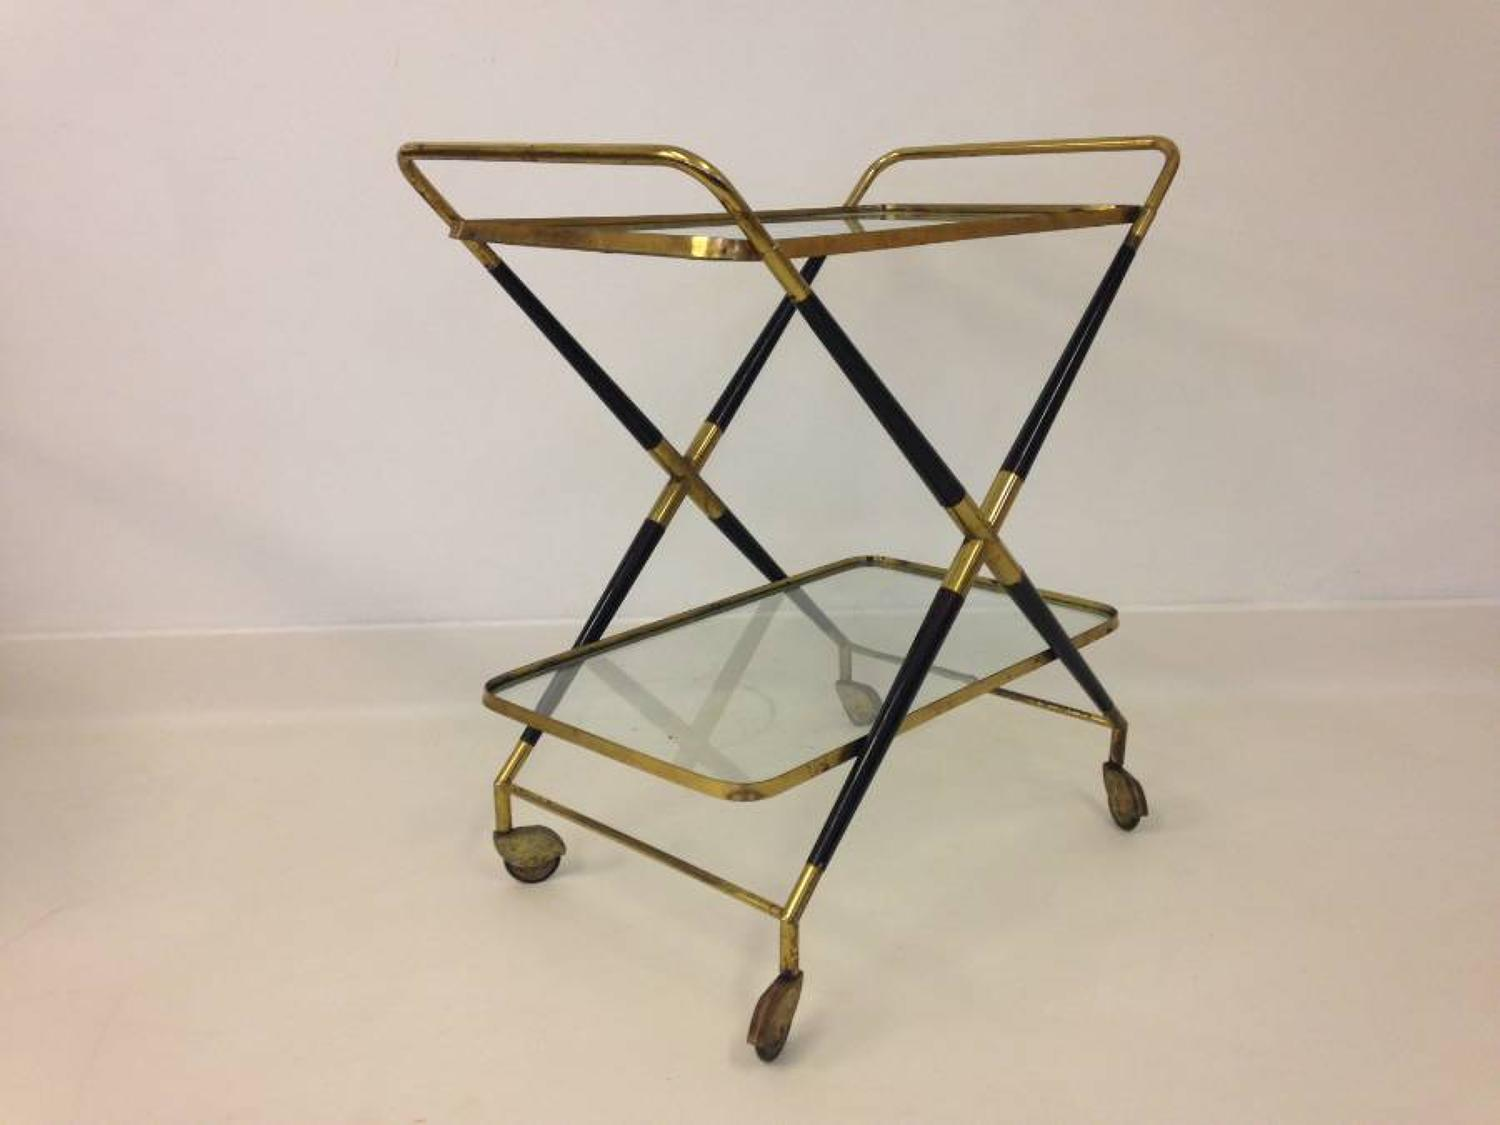 1950s lacquered wood and brass cart